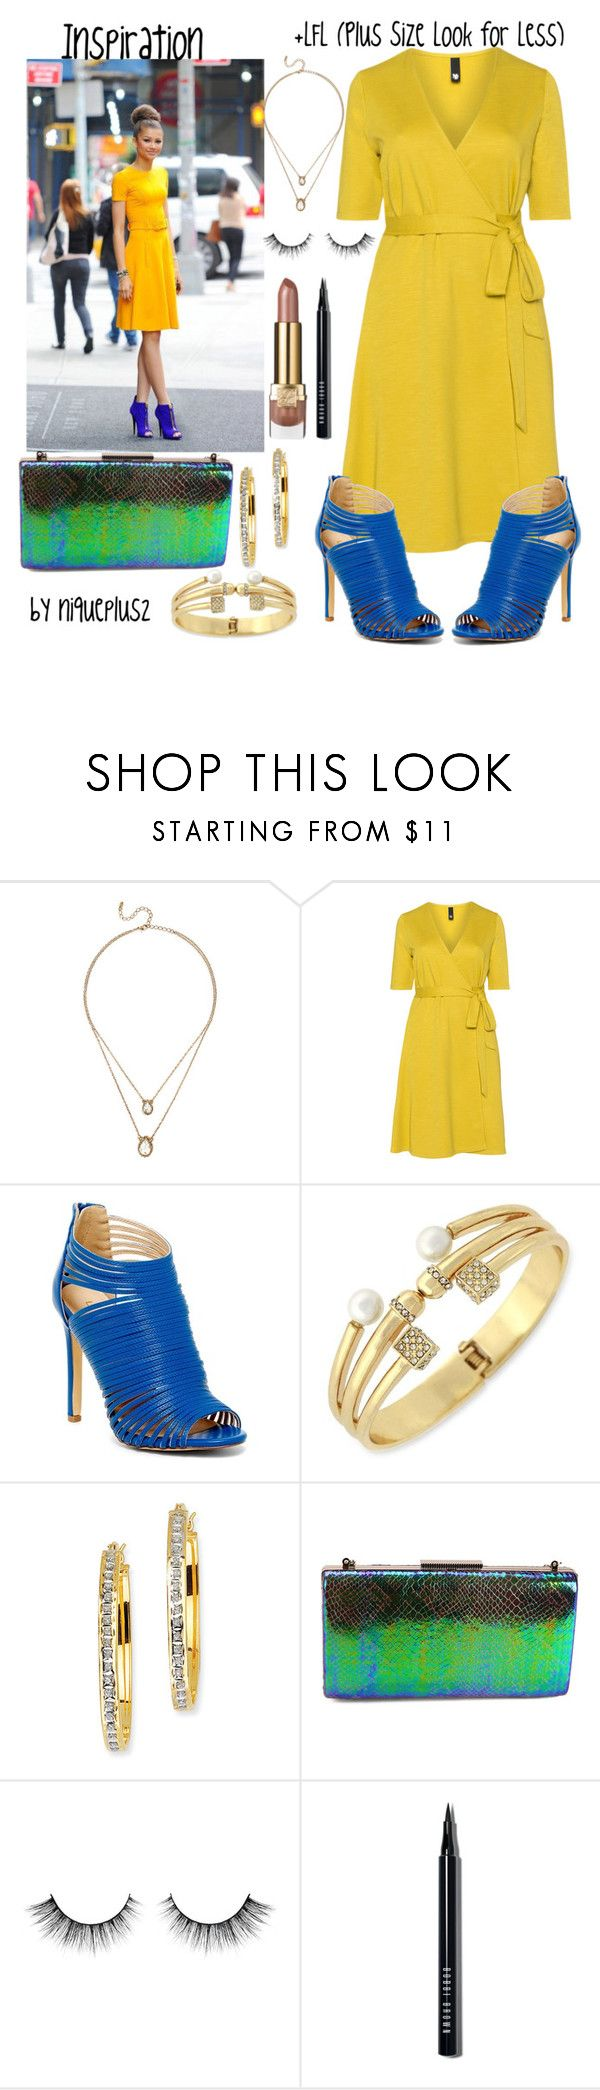 """""""+LFL (Plus Size Look for Less): Zendaya Yellow Dress & Blue Heels"""" by niqueplus on Polyvore featuring Manon Baptiste, Liliana, BCBGeneration, Kevin Jewelers, Estée Lauder, Bobbi Brown Cosmetics, women's clothing, women, female and woman"""